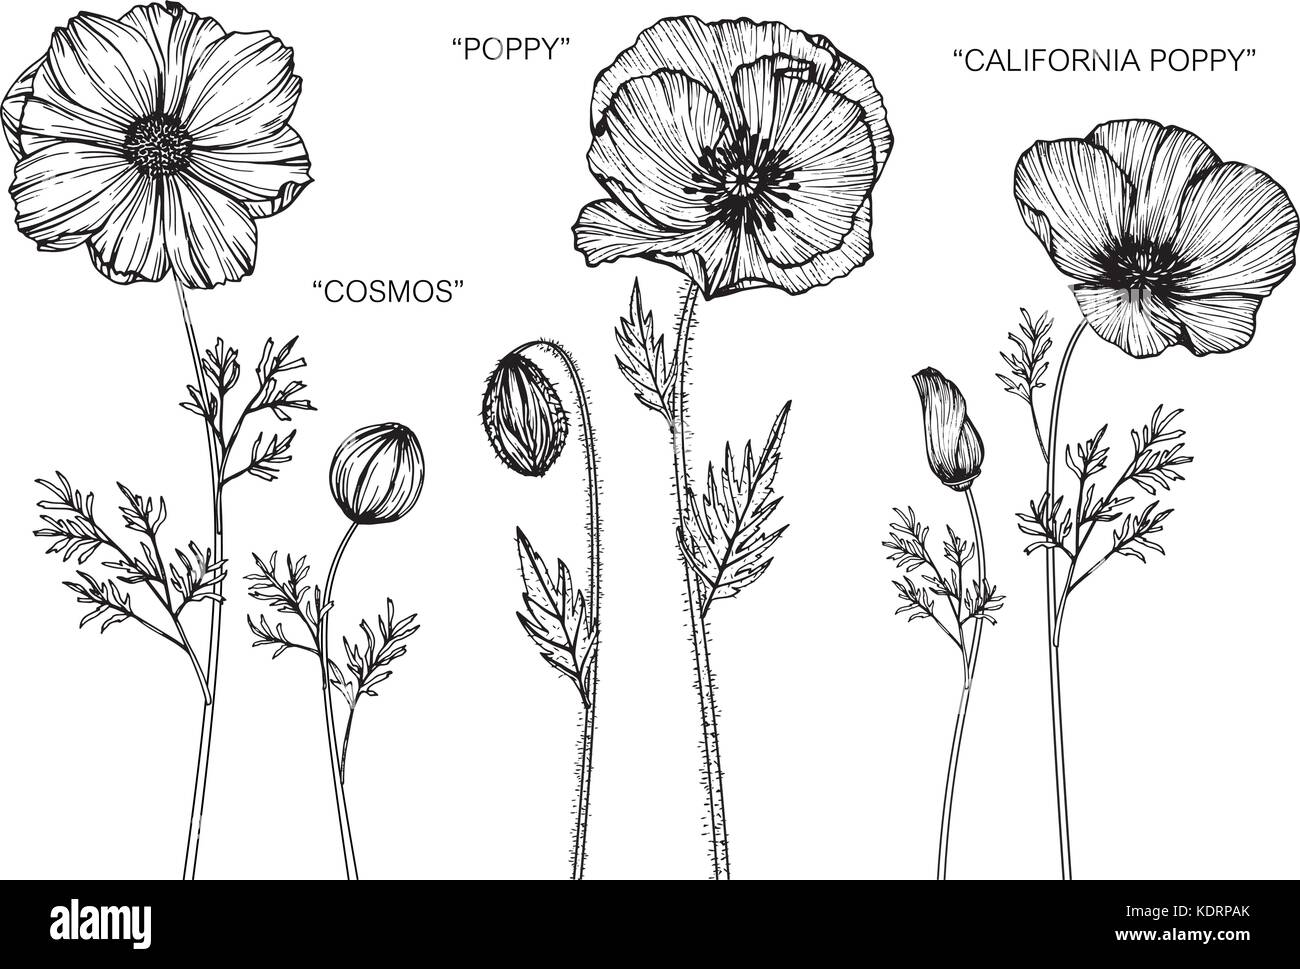 Cosmos Coquelicot Pavot De Californie Illustration Dessin